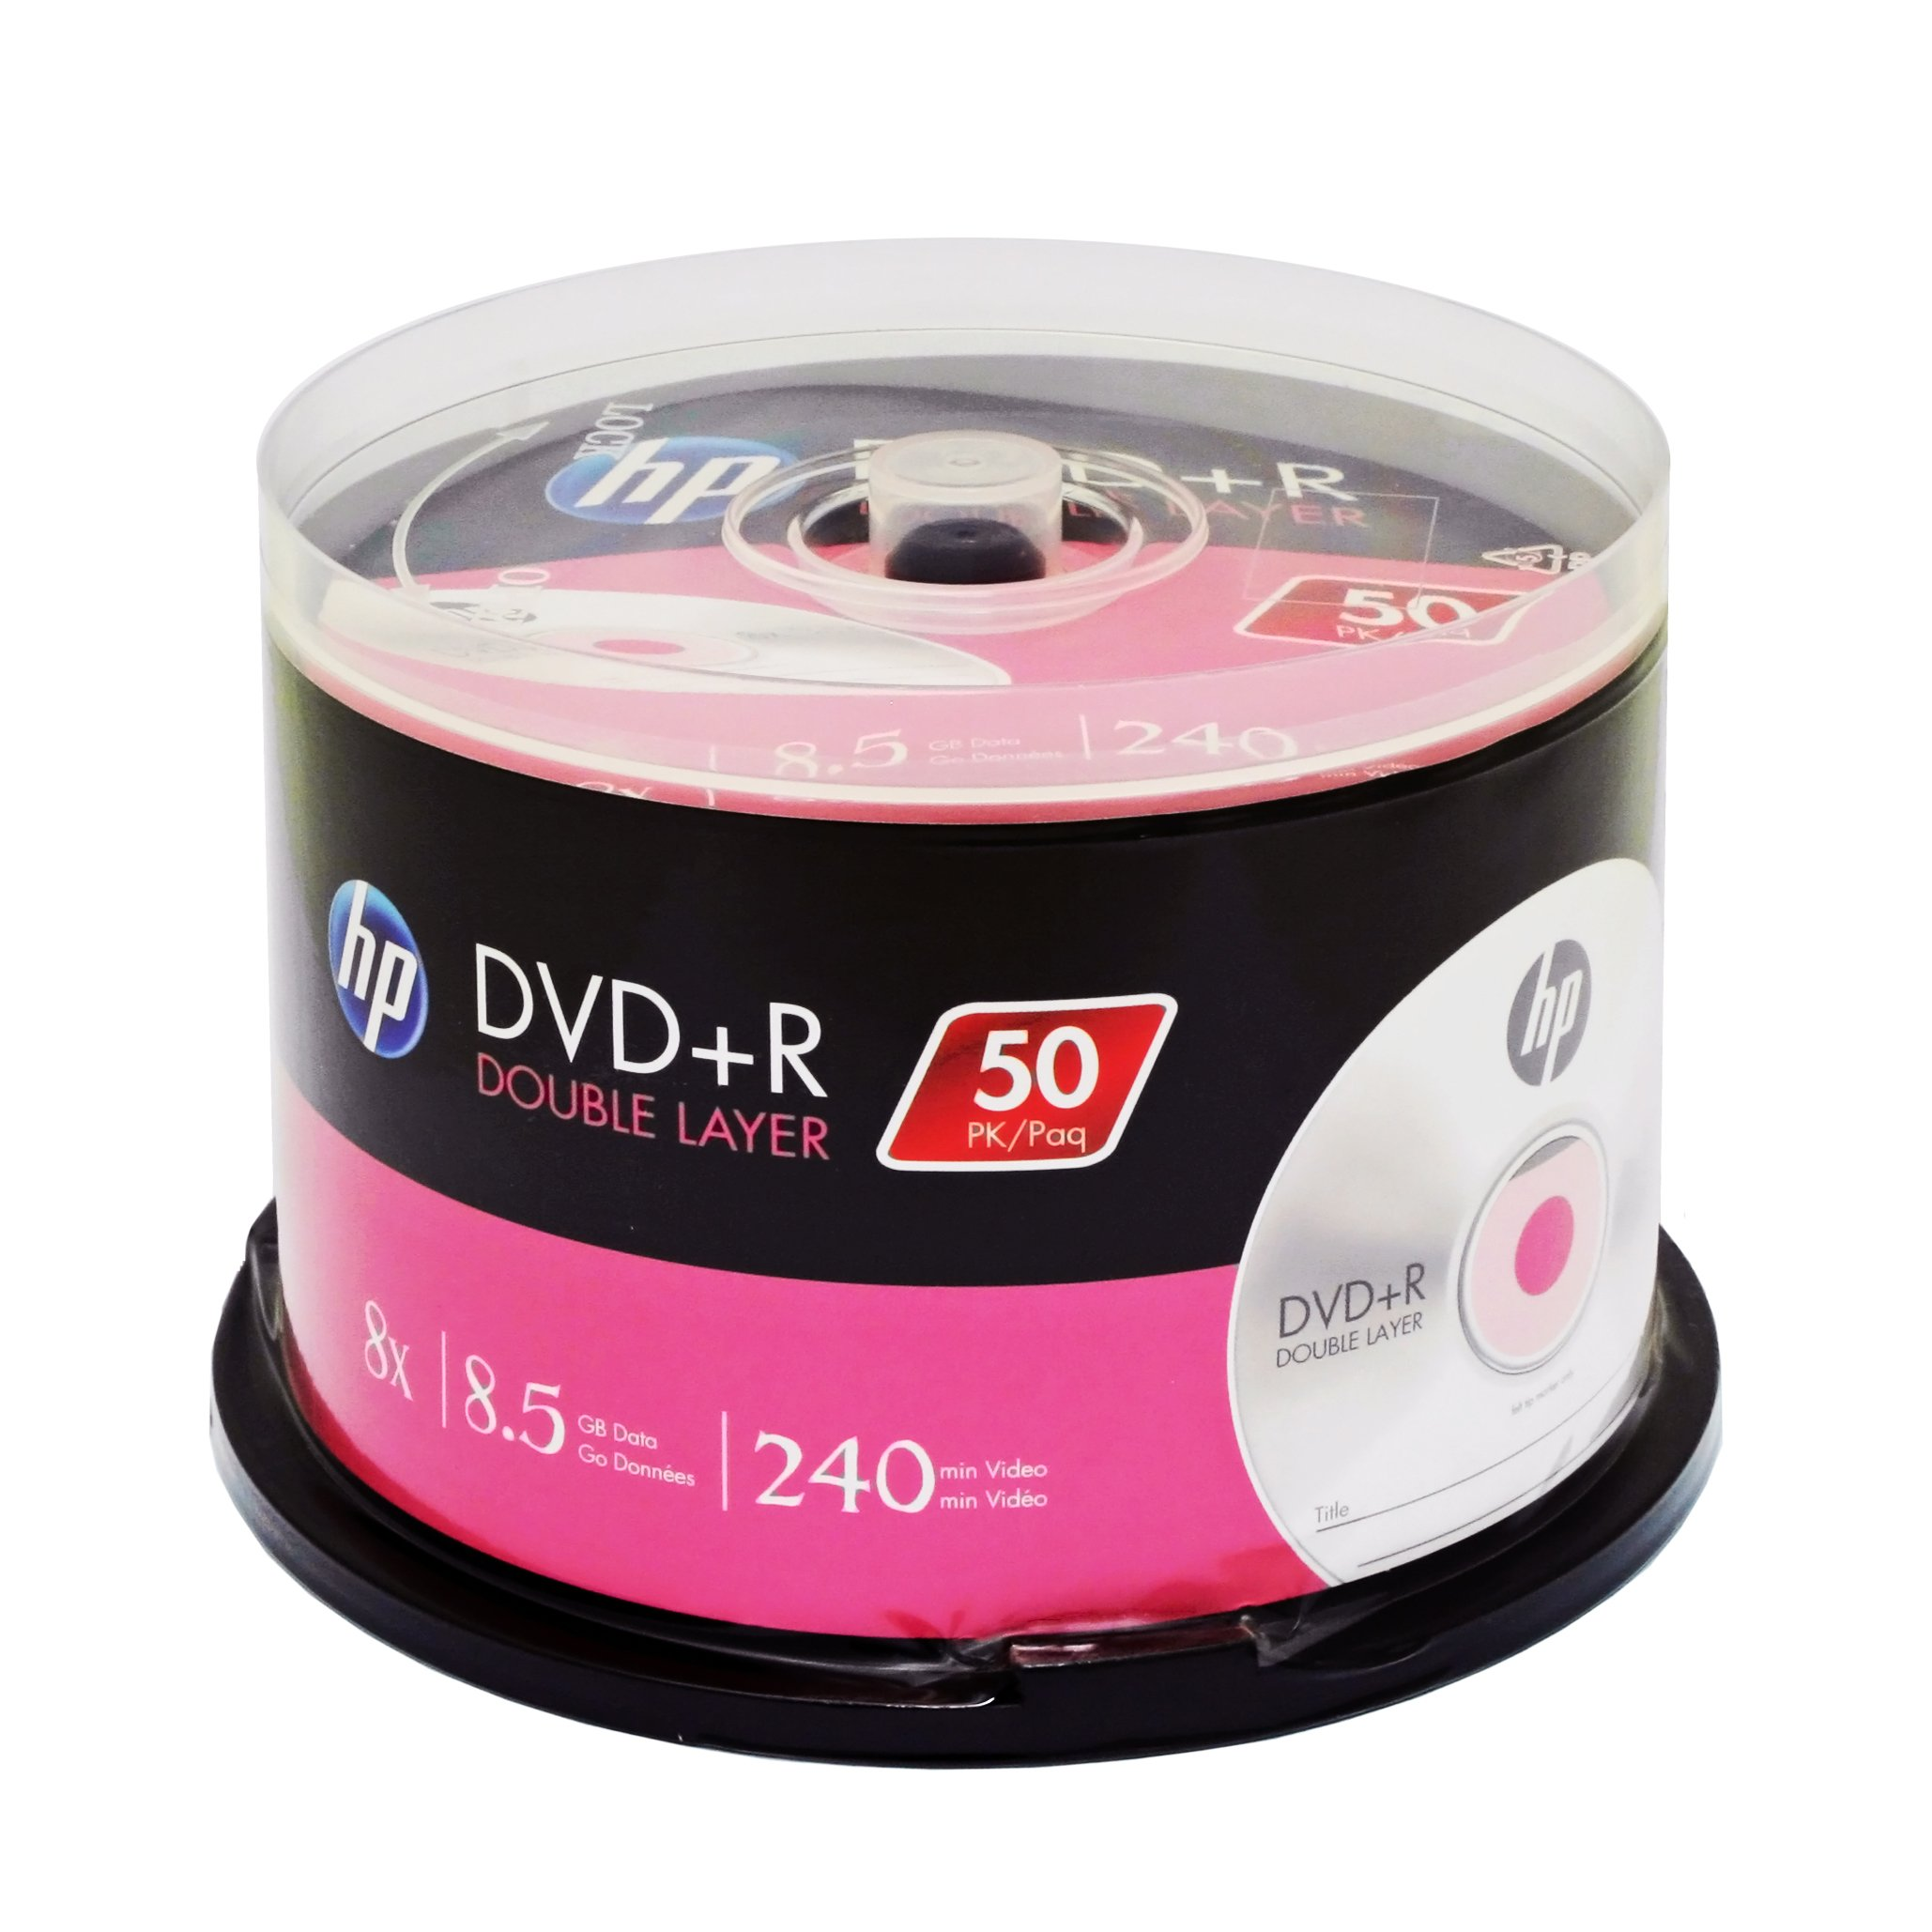 HP DVD+R DOUBLE LAYER BRANDED 8X 8.5GB 240min Video